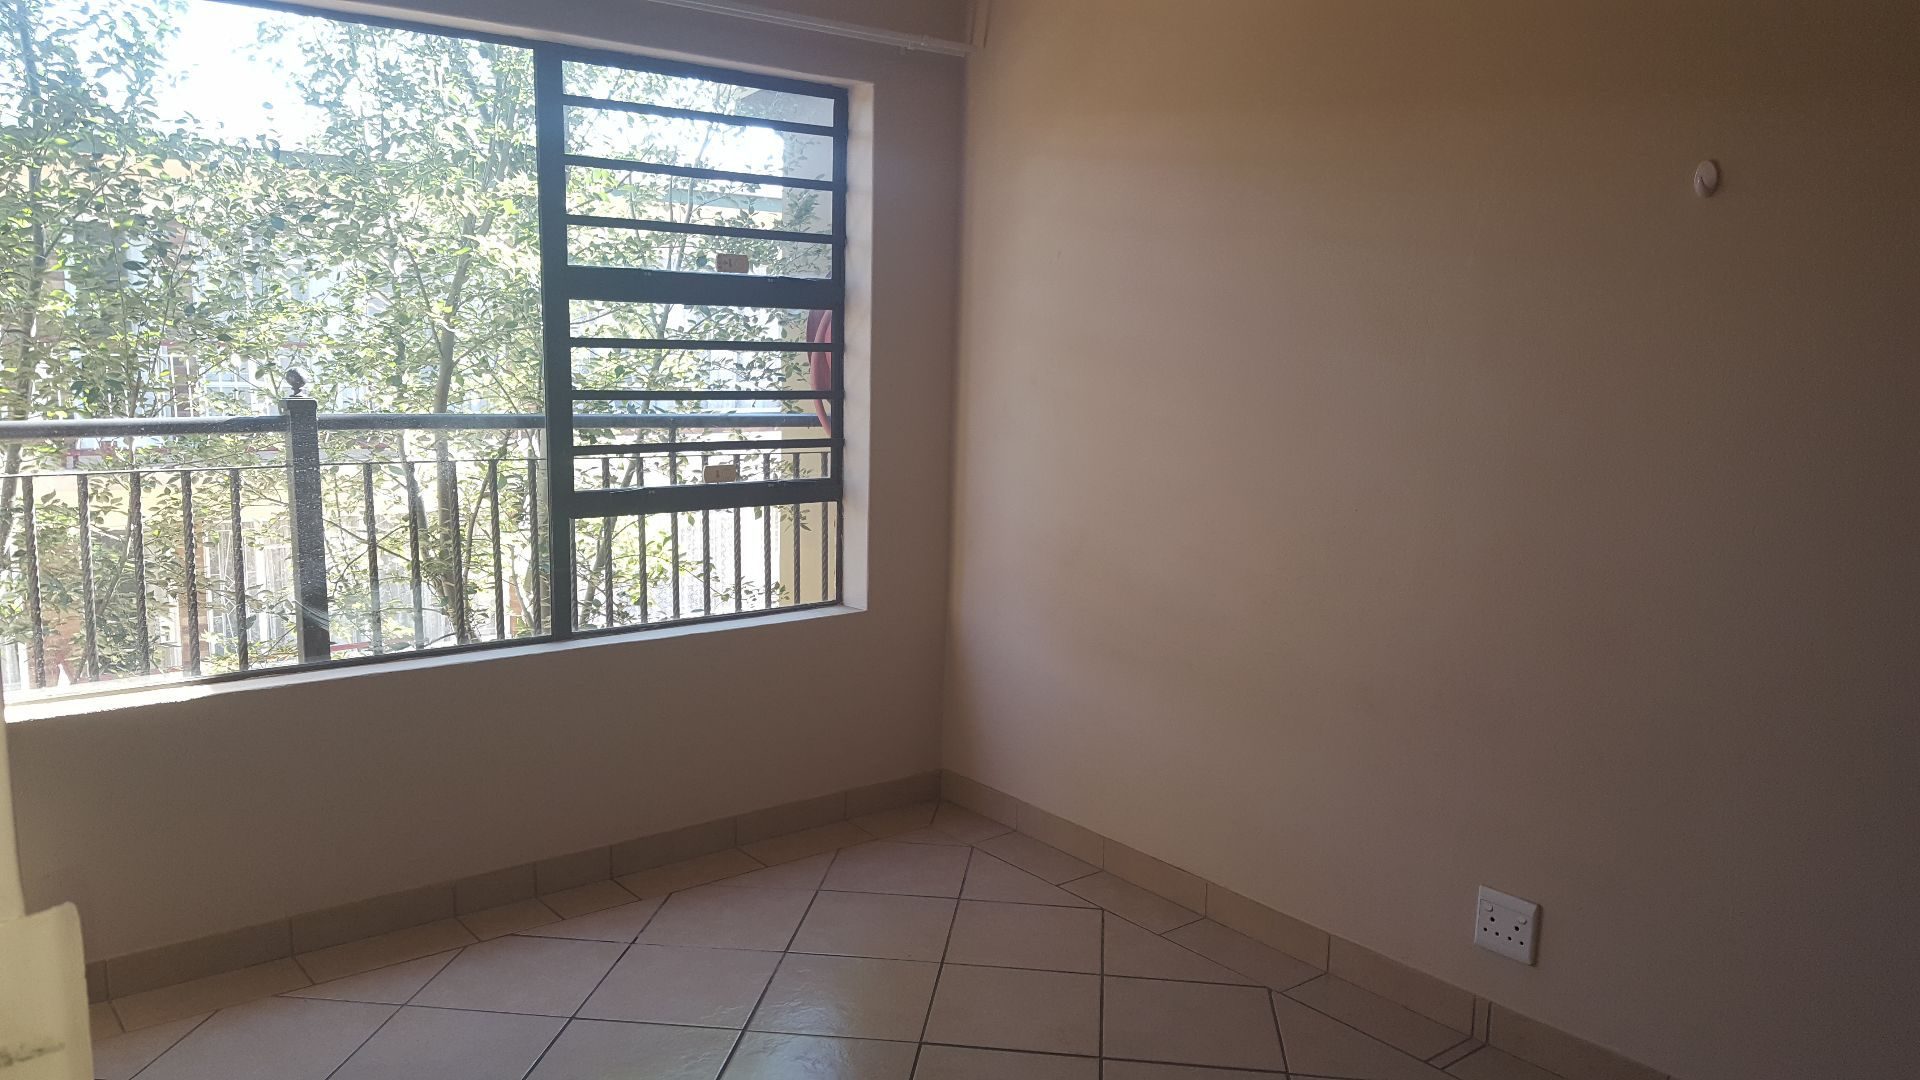 Potchefstroom Central property for sale. Ref No: 13514573. Picture no 16